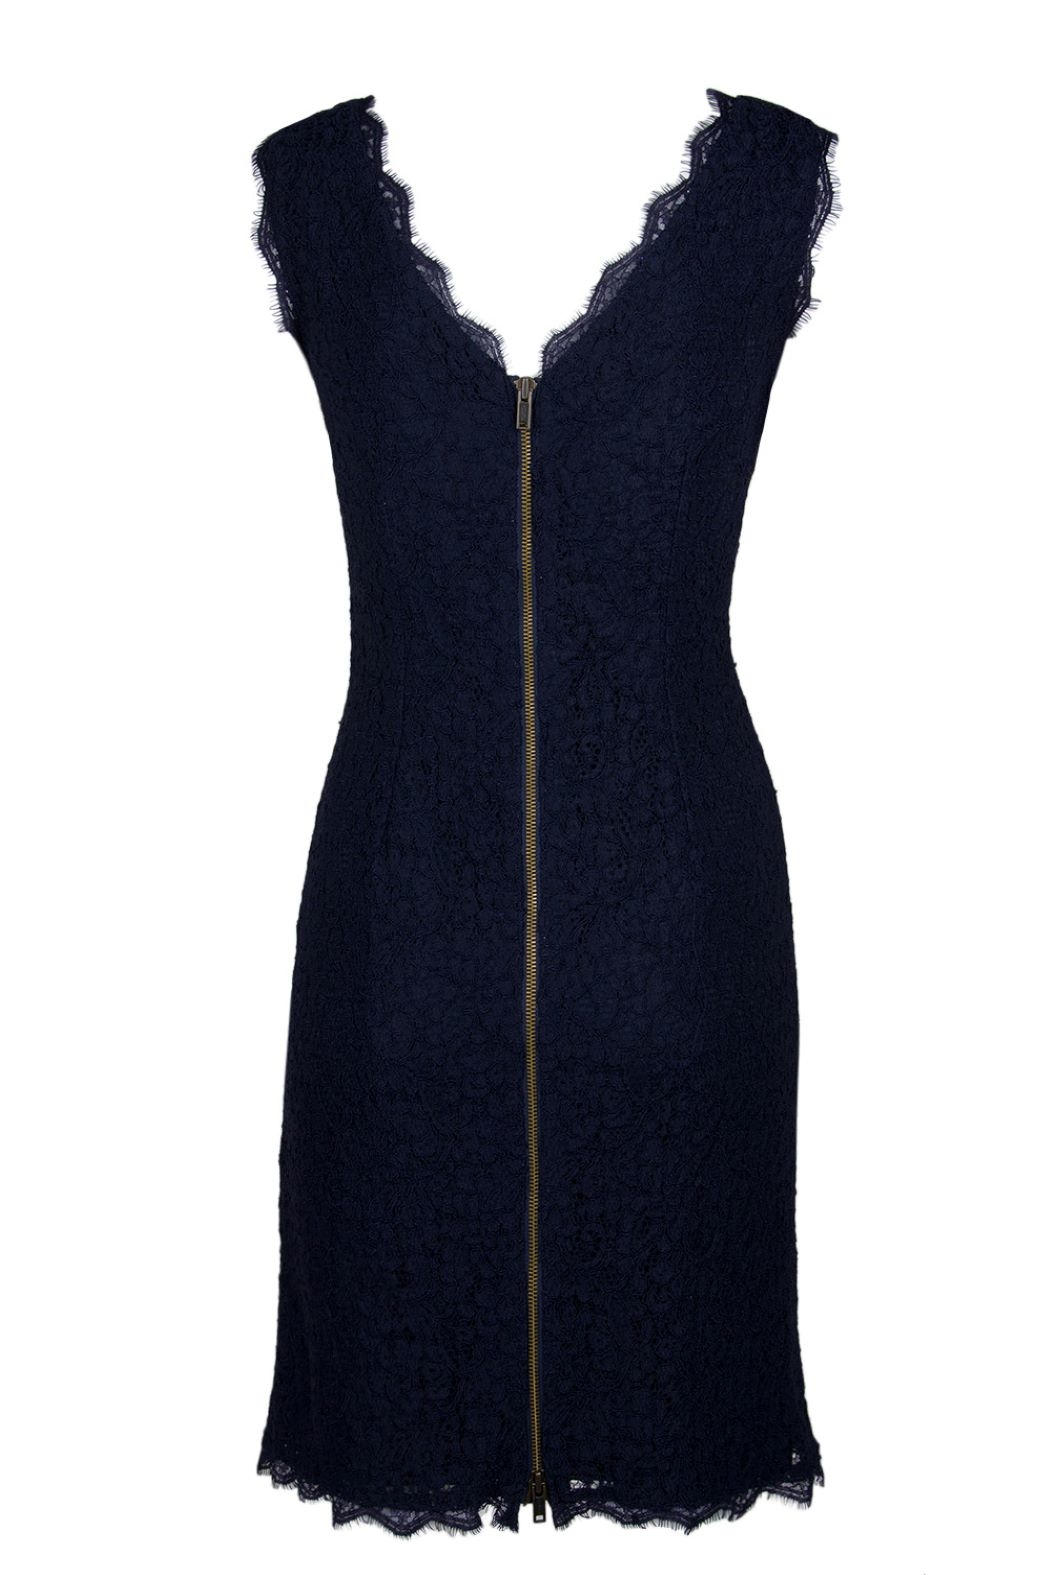 Adrianna Papell/Imm App Navy Lace Dress - Front Full Image